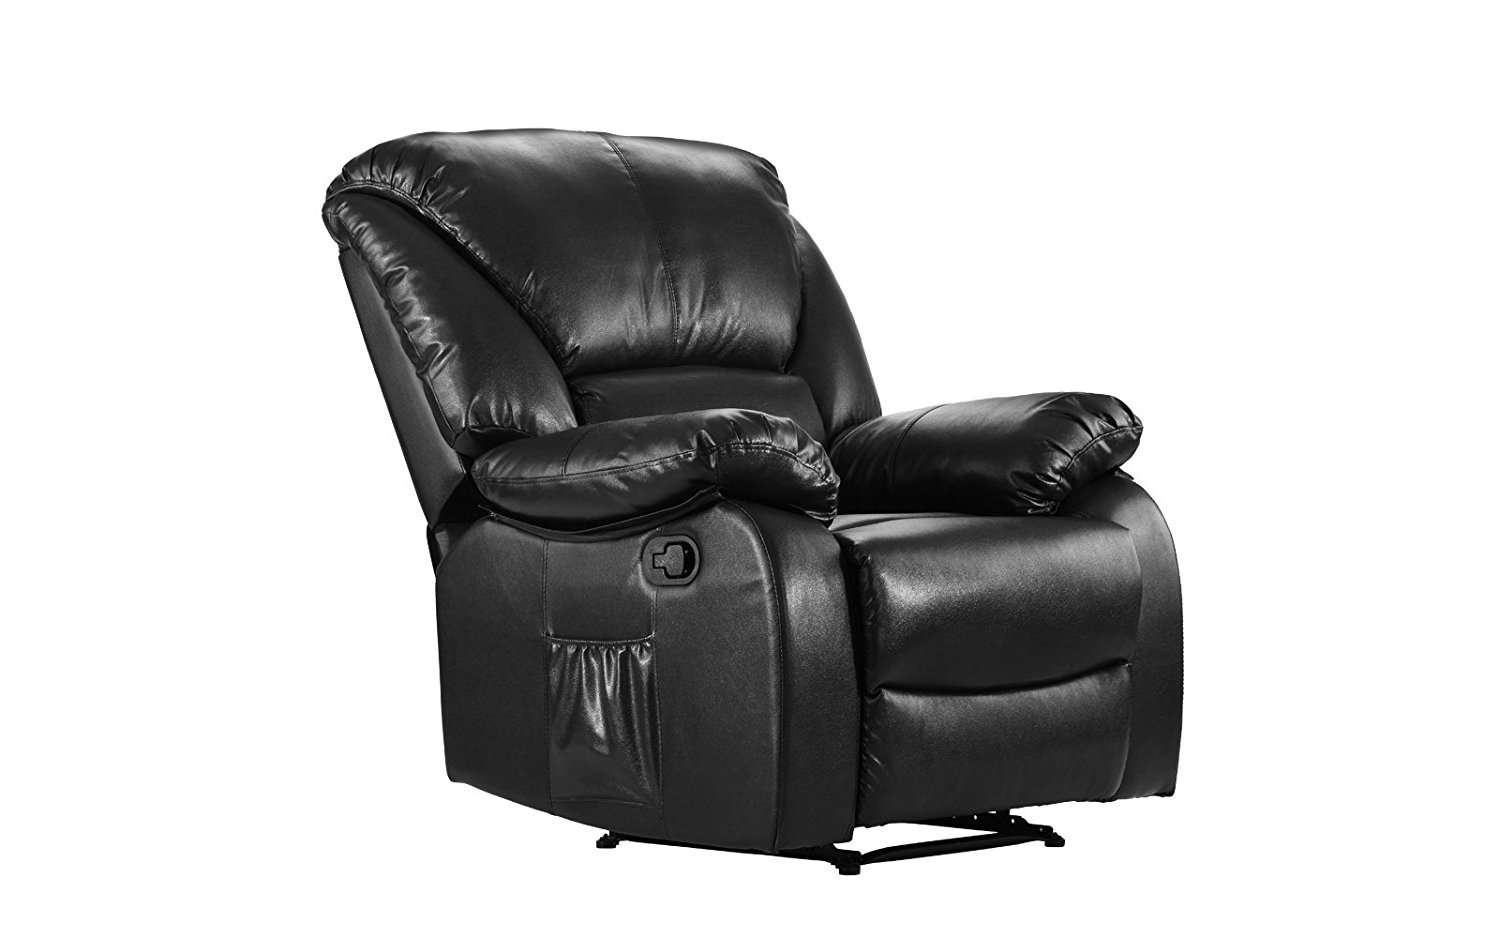 Fine Details About Full Body Massage Recliner Chair Pu Leather Reclining Massage Chair Black Ncnpc Chair Design For Home Ncnpcorg